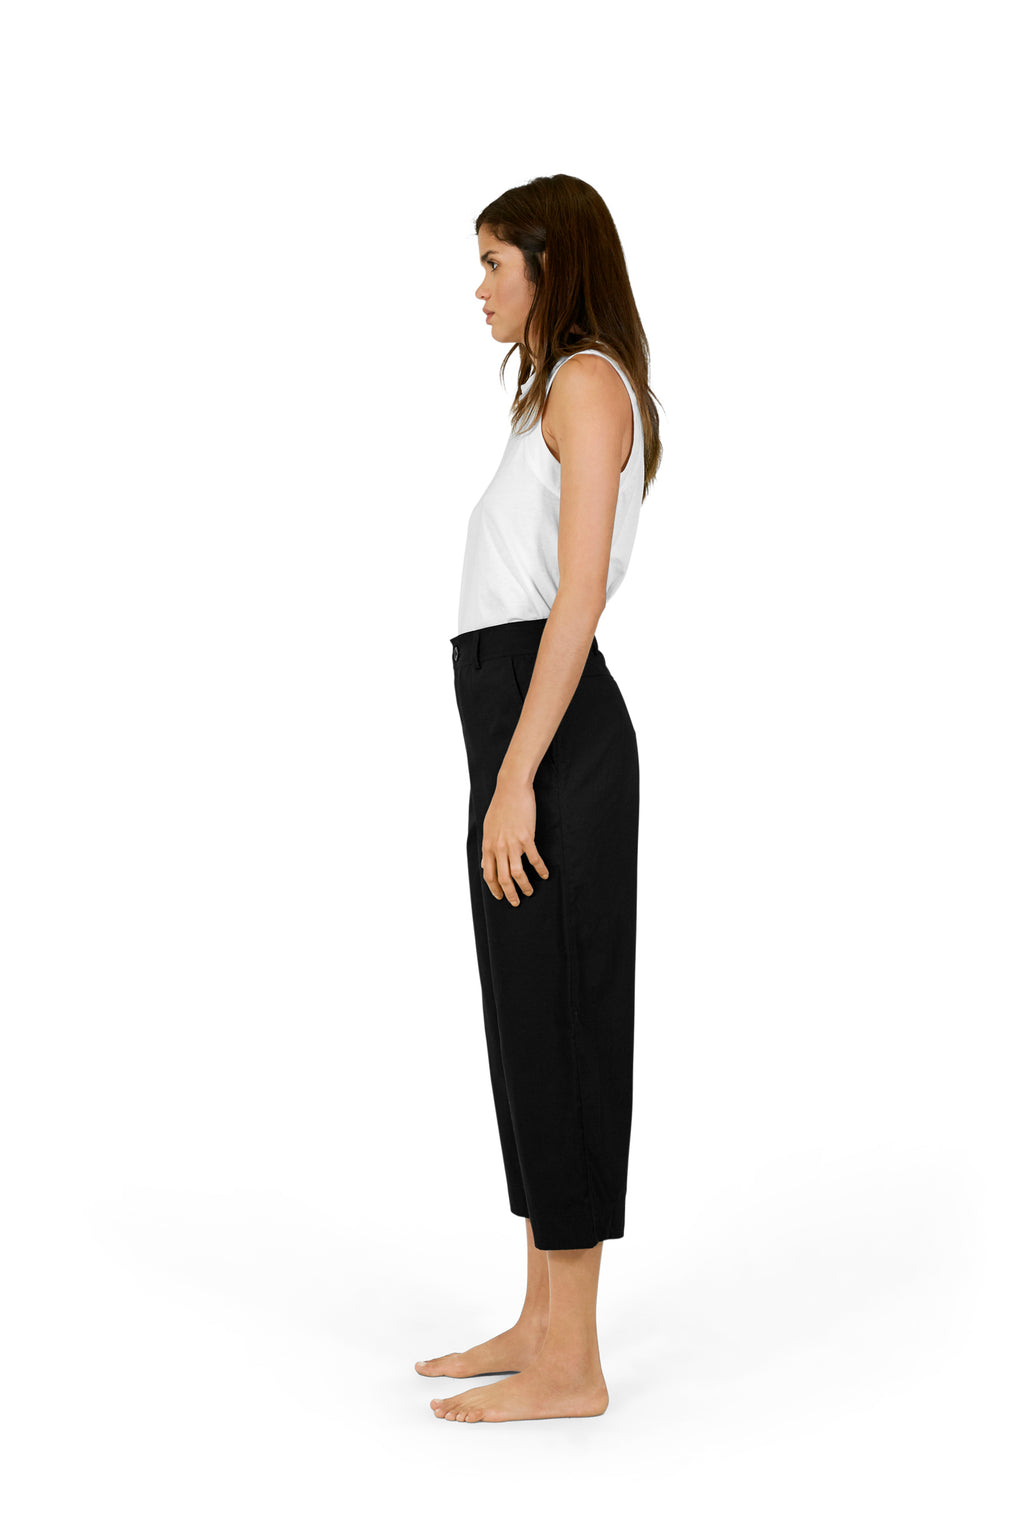 SanBasic Tailored Pant